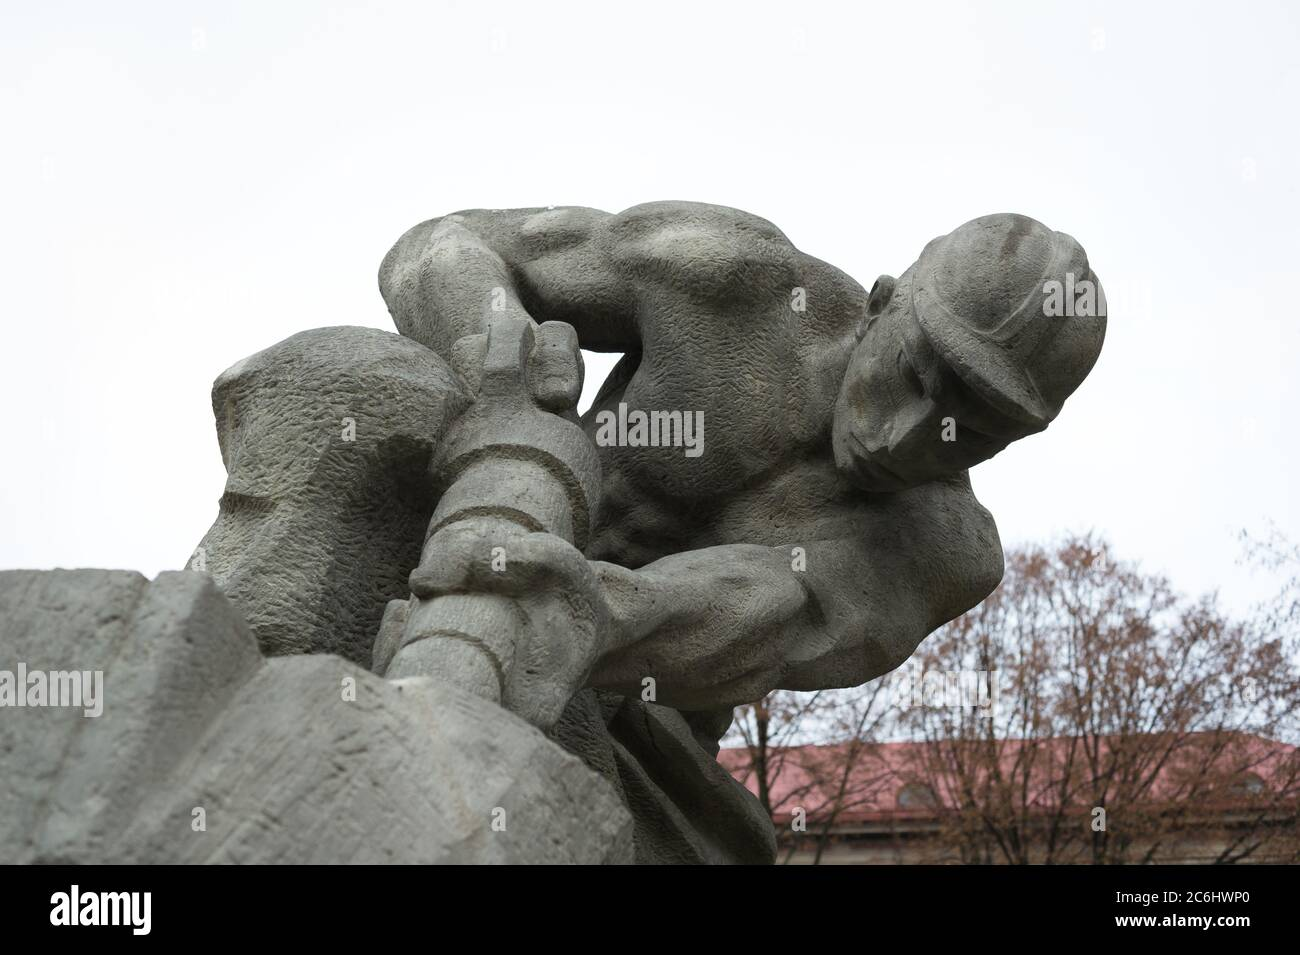 Historic statue made in socialist realism style. Realistic muscular mineworker is holding pneumatic drill. Glorification of manual work and mining and Stock Photo